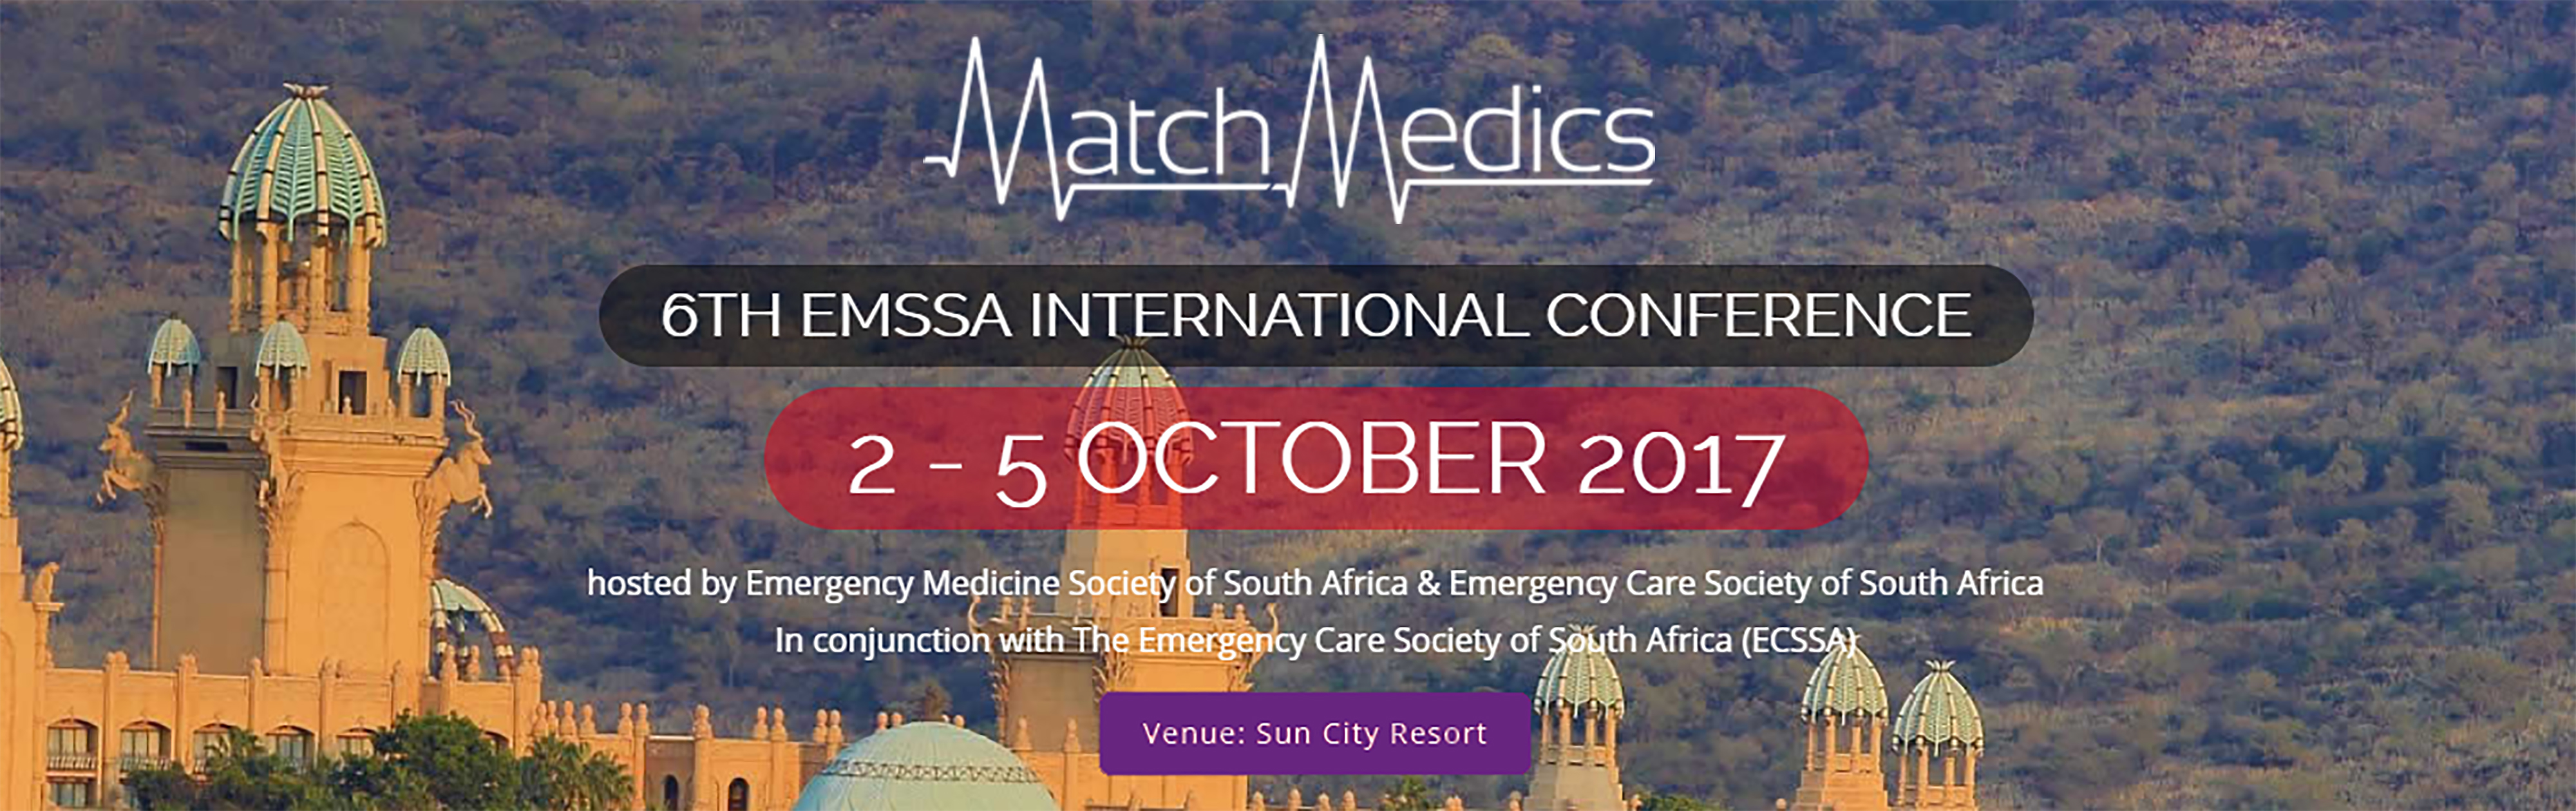 Visit MatchMedics at stand 25 at the EMSSA International